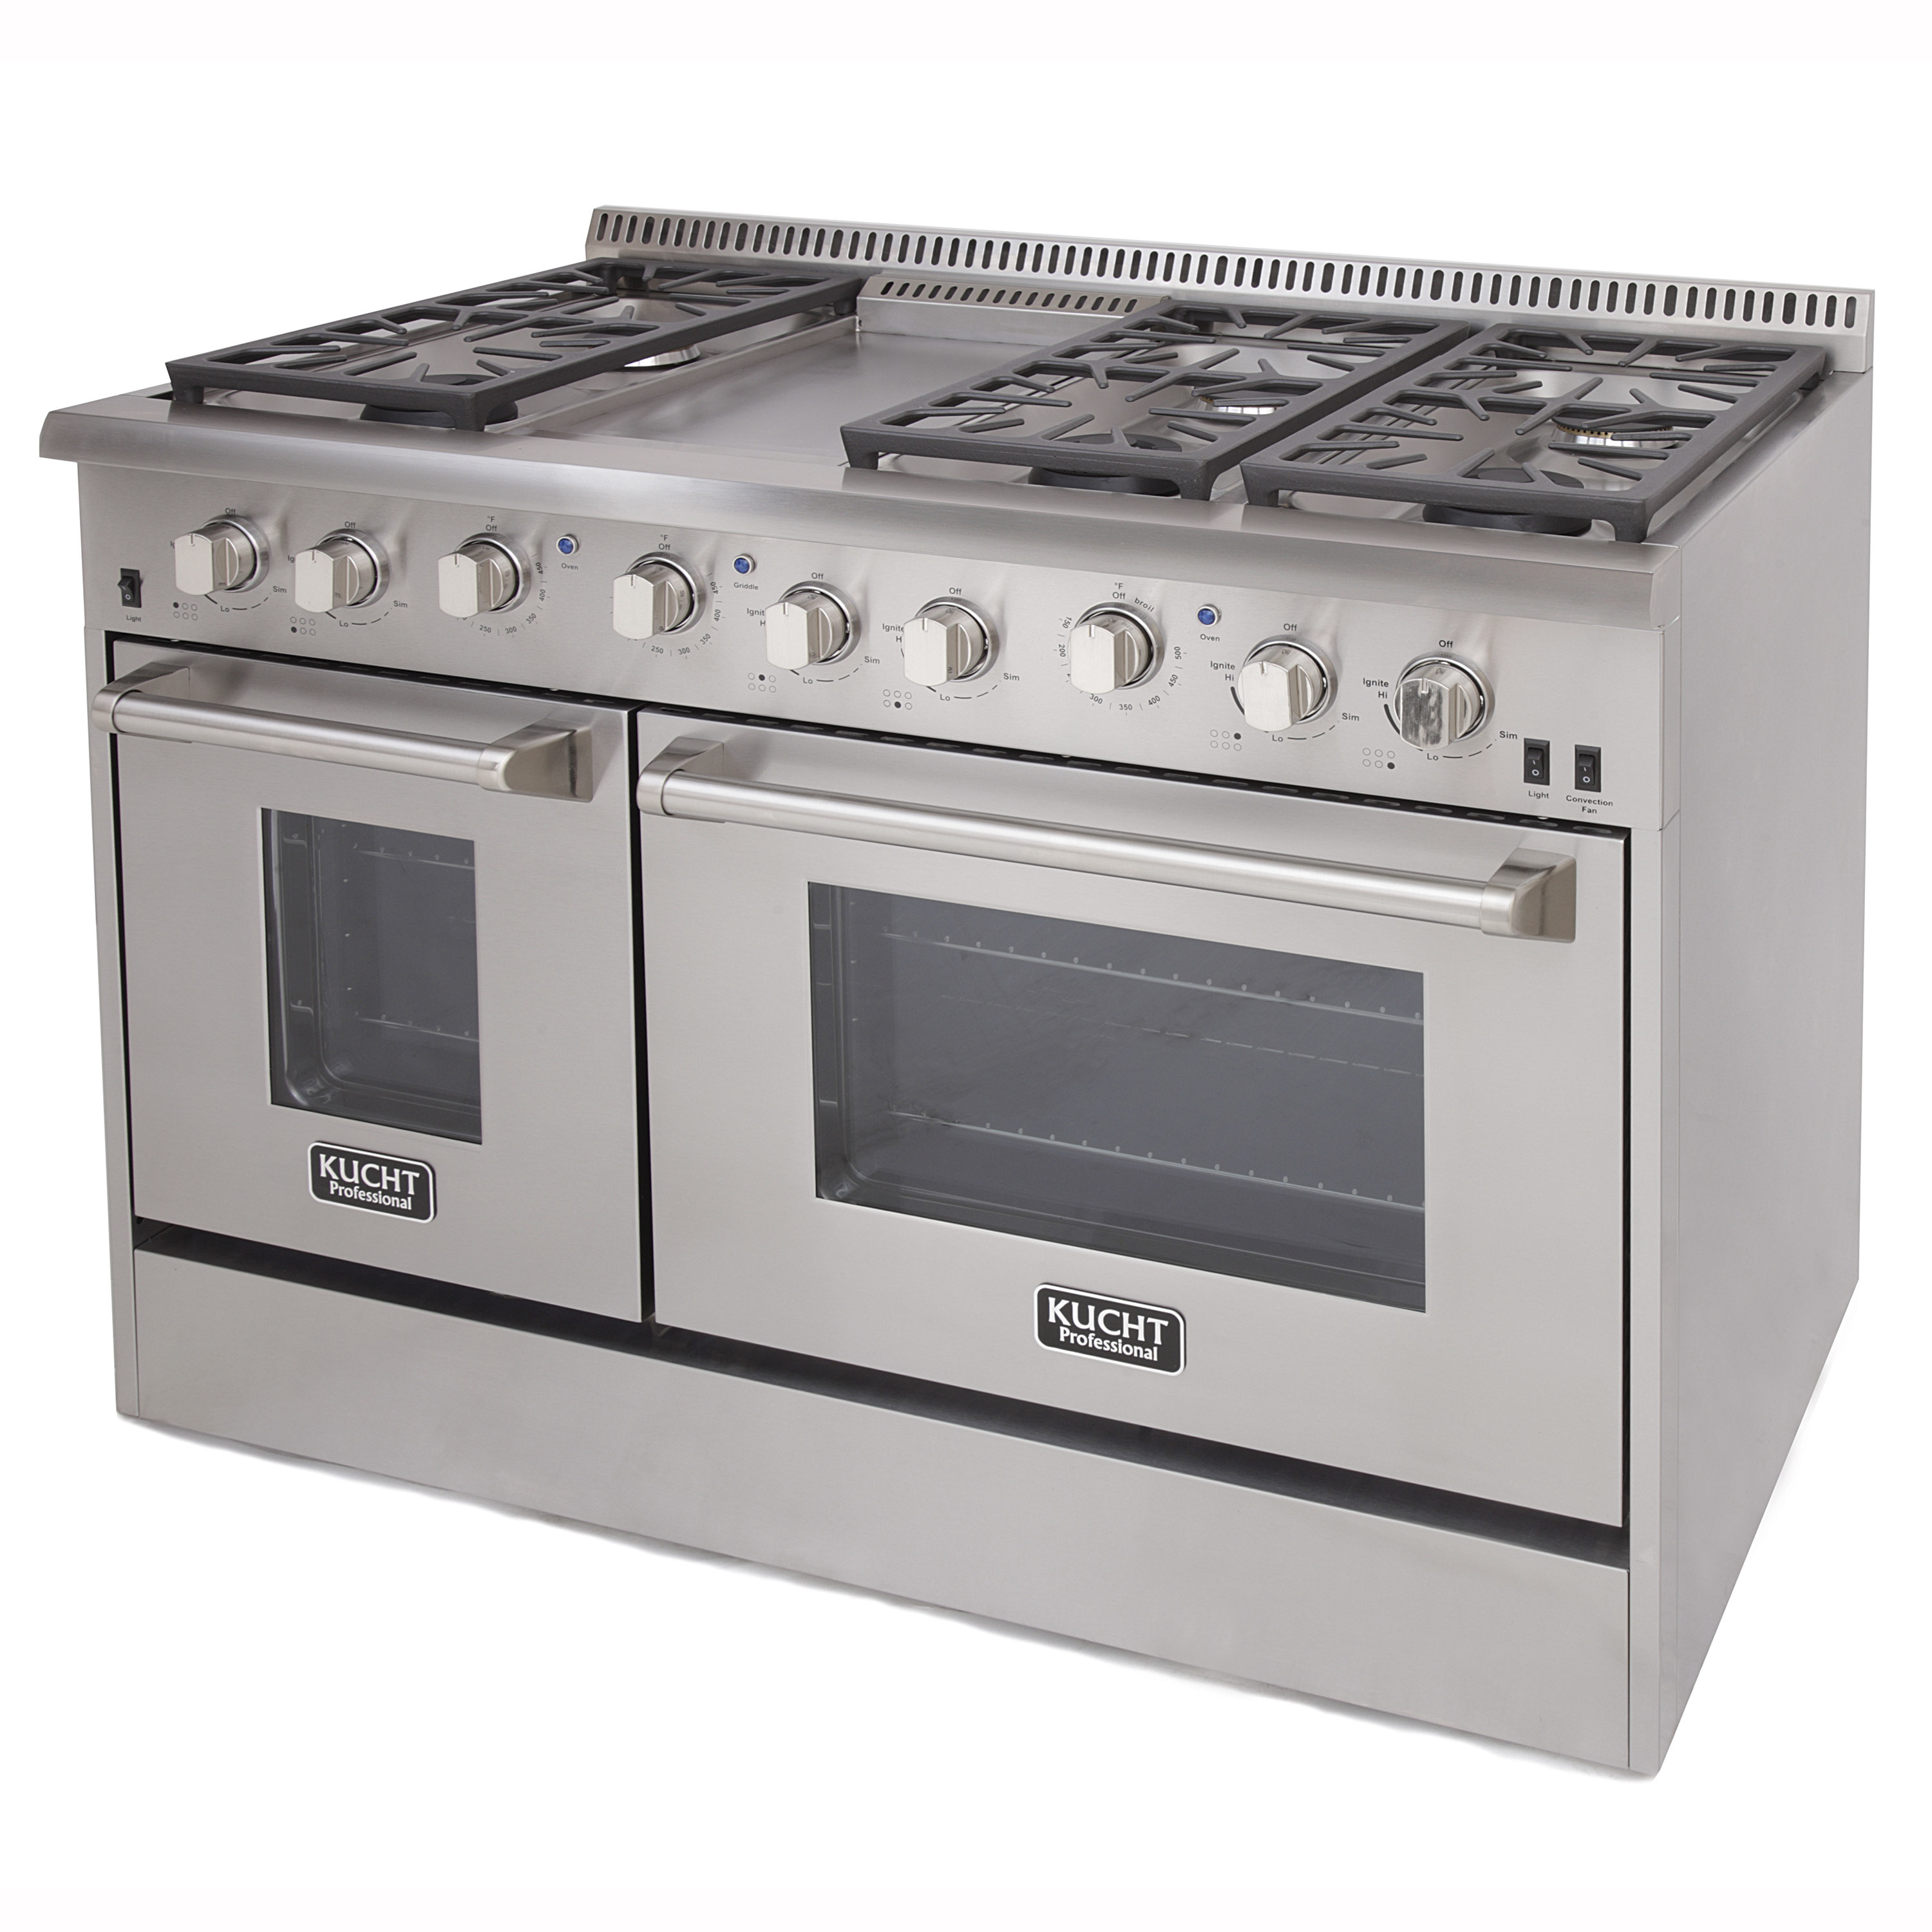 Side by side double oven gas stove - 2 Picture